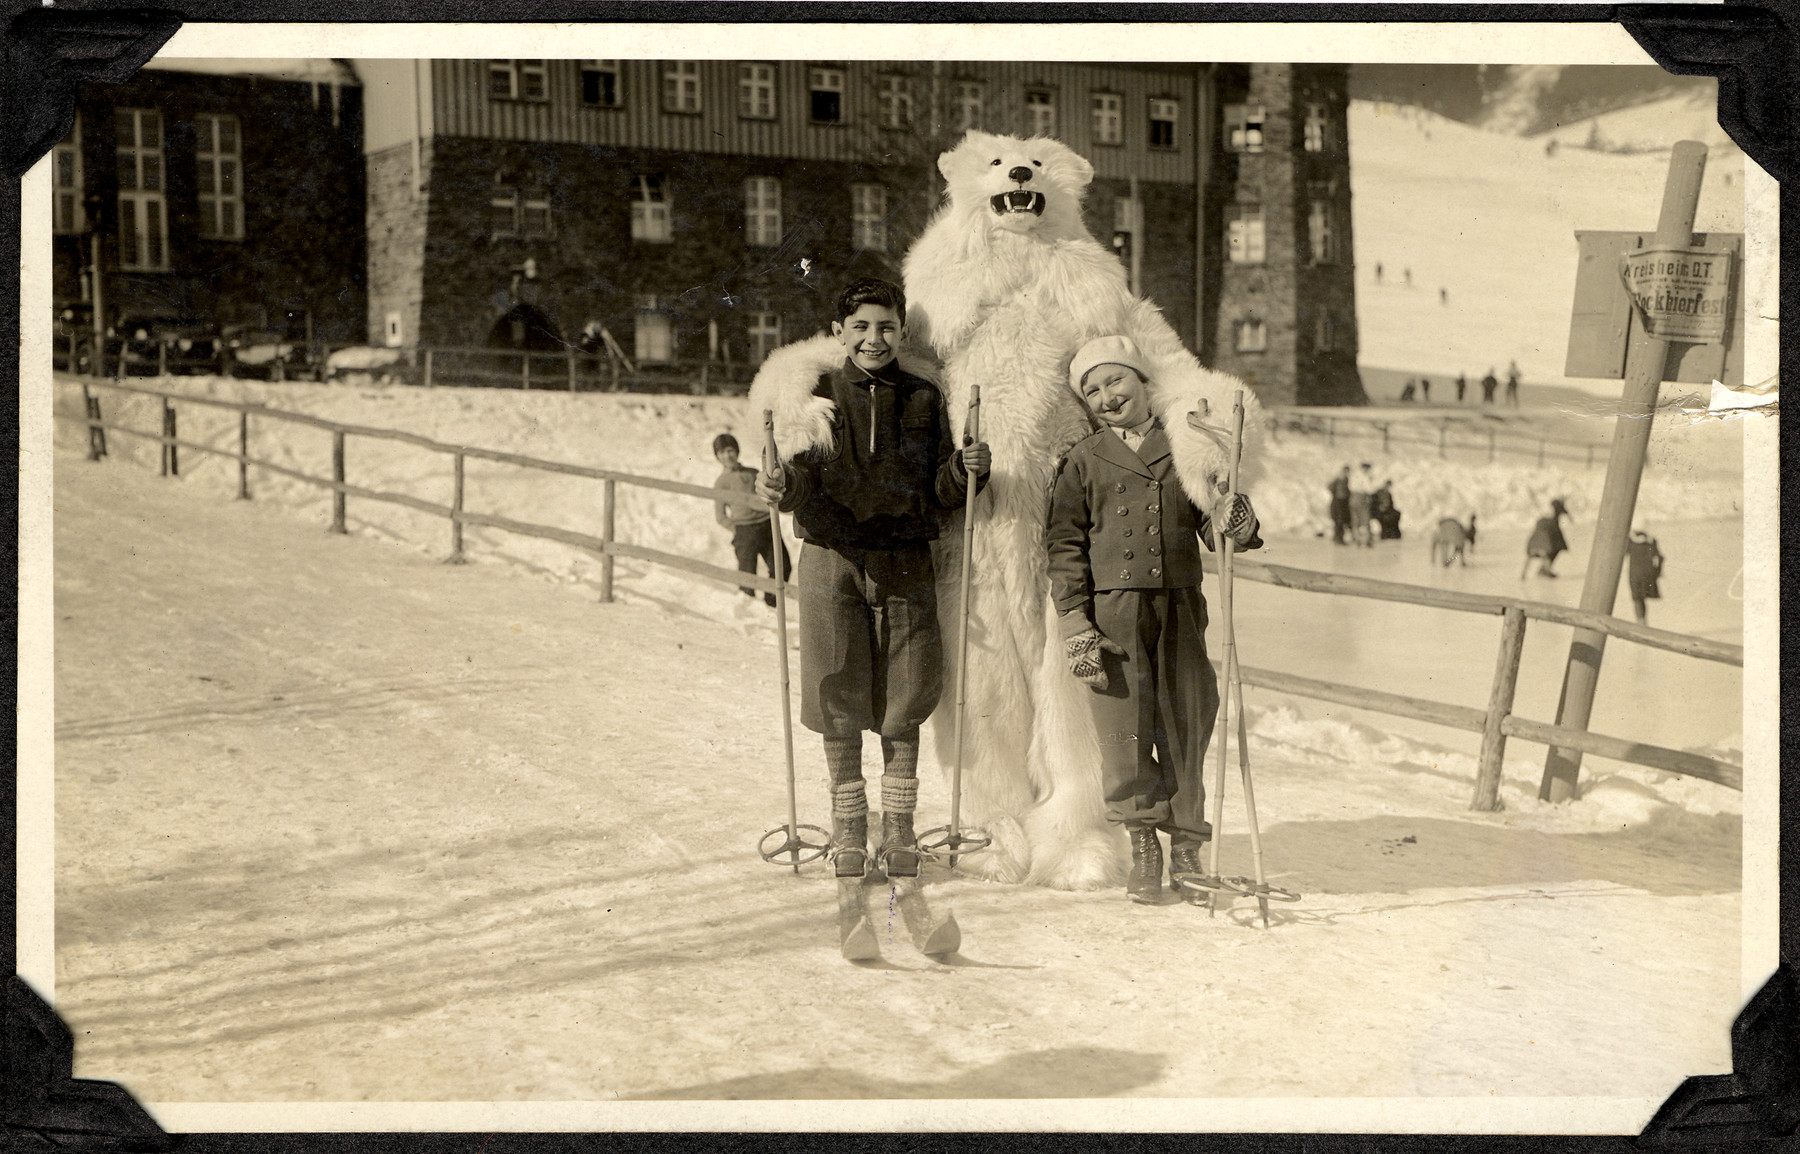 Egon and Edith Weiss pose with a someone in a bear costume while while on winter vacation in the mountains of Bavaria.